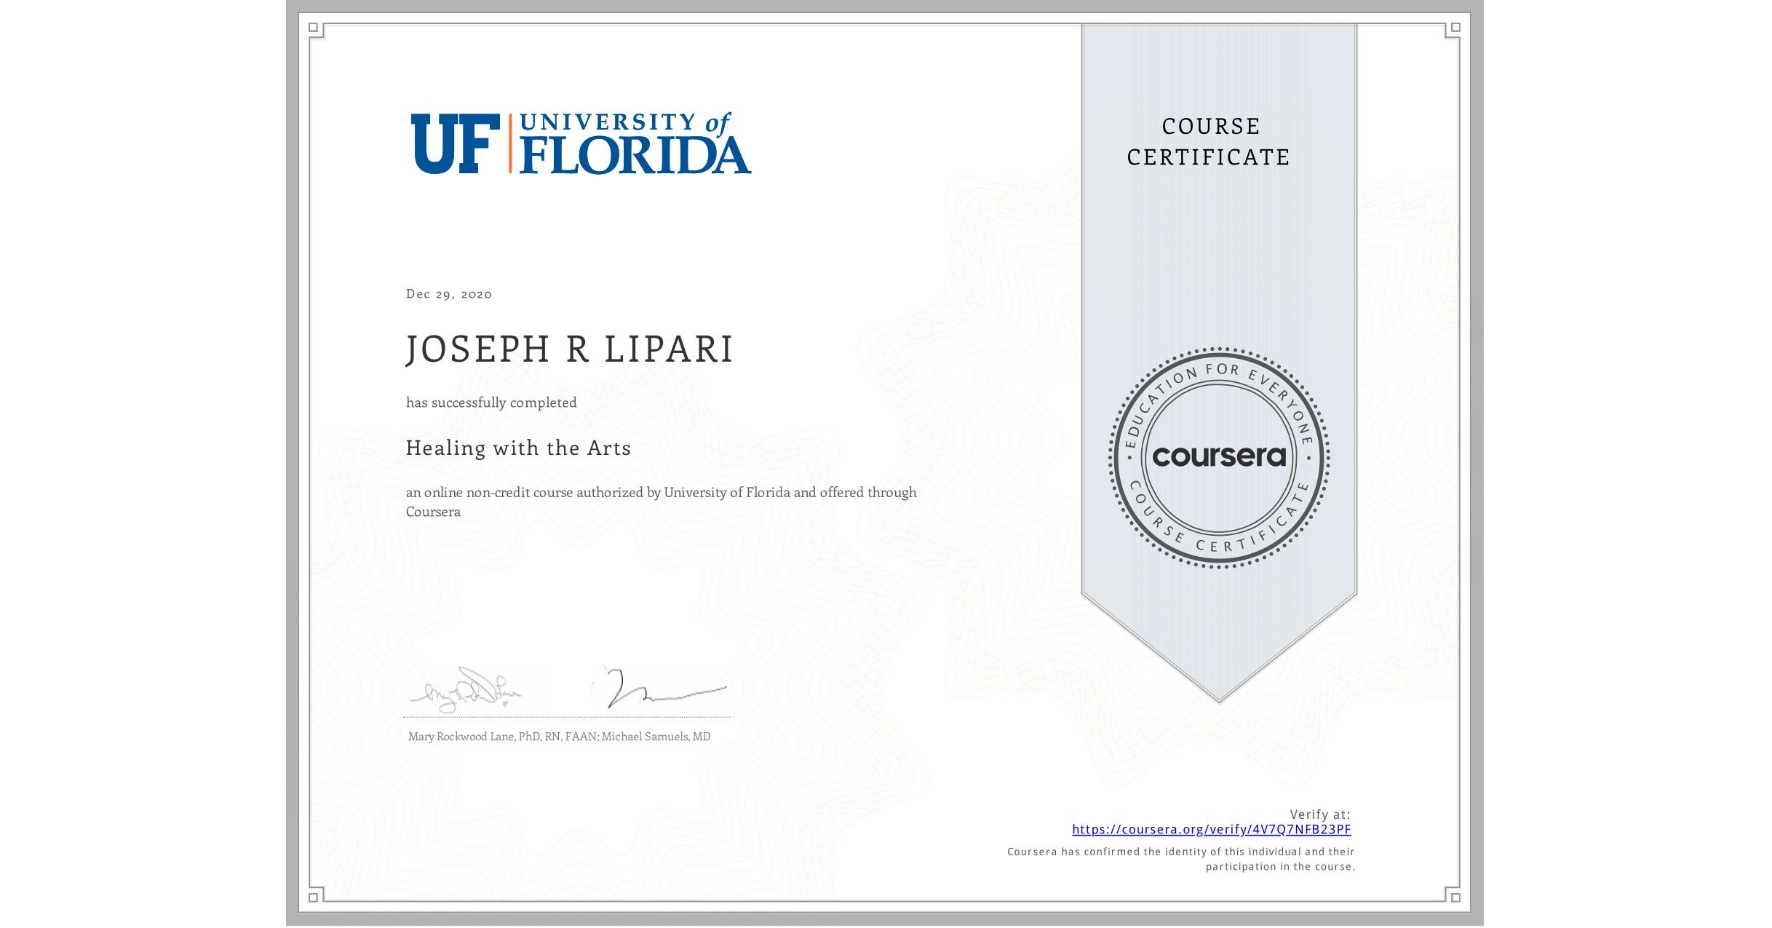 View certificate for JOSEPH R  LIPARI, Healing with the Arts, an online non-credit course authorized by University of Florida and offered through Coursera